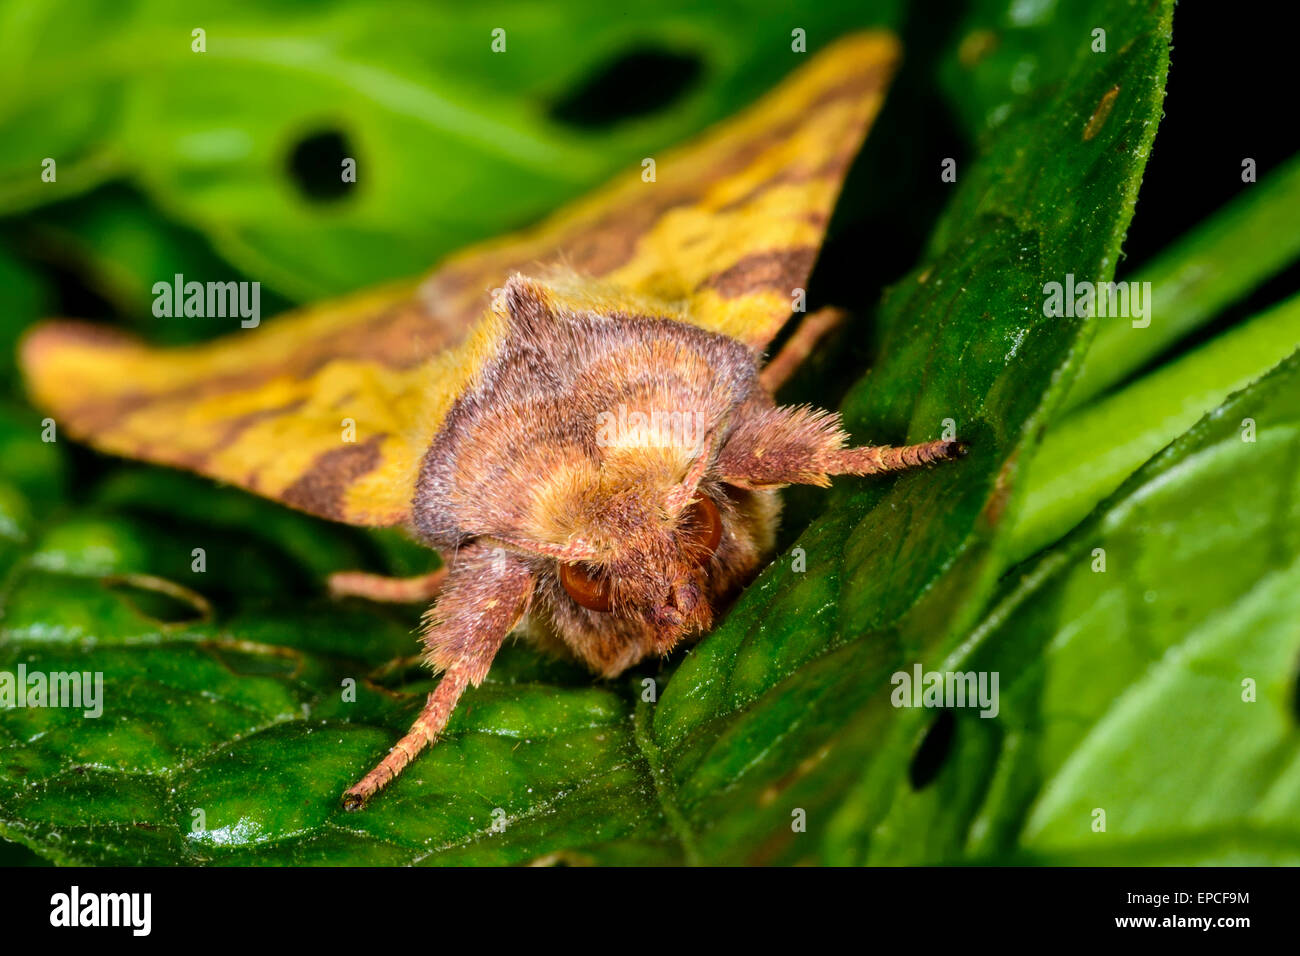 pink-barred sallow, xanthia togata - Stock Image